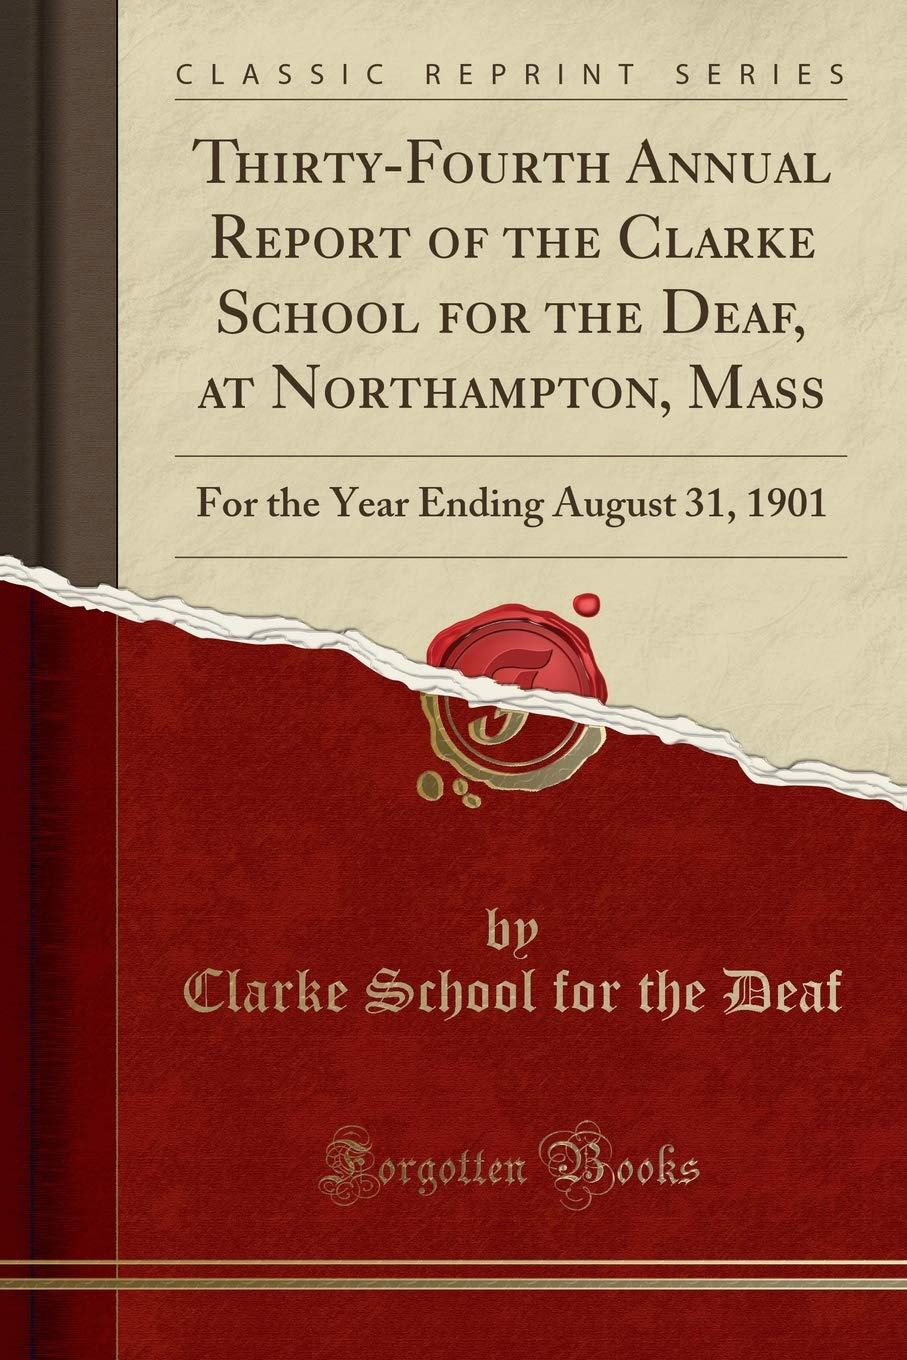 Download Thirty-Fourth Annual Report of the Clarke School for the Deaf, at Northampton, Mass: For the Year Ending August 31, 1901 (Classic Reprint) ebook